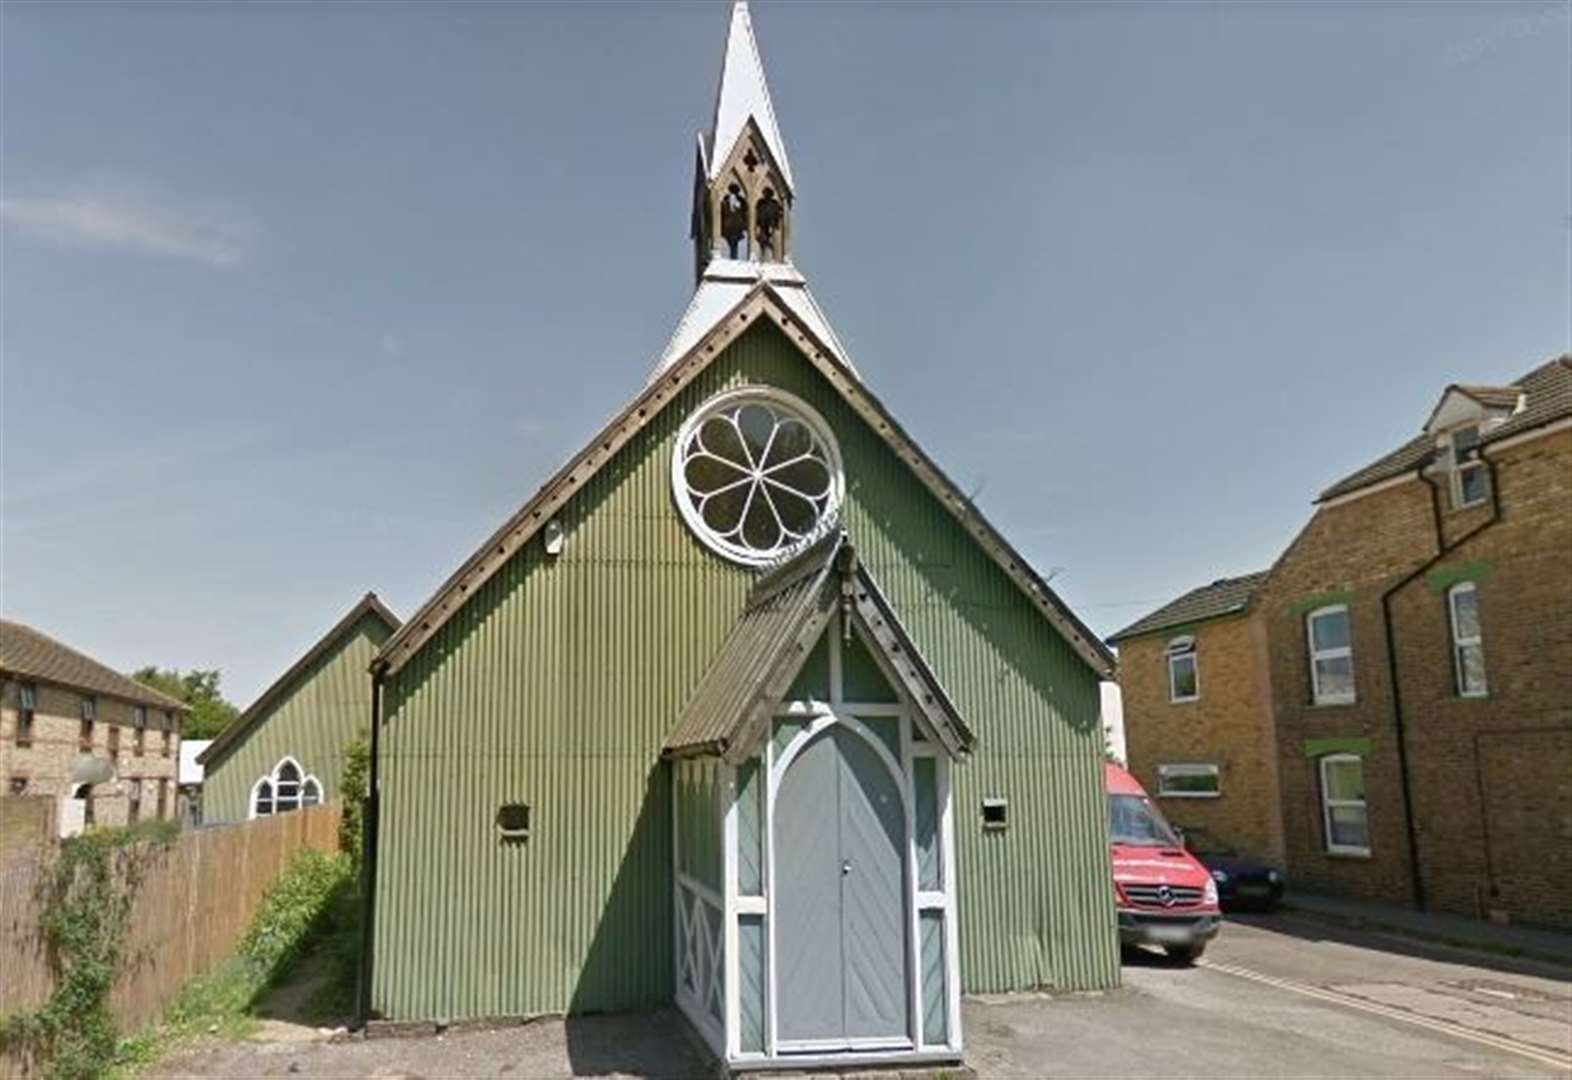 Hallelujah! Tin church music venue saved by £49k grant